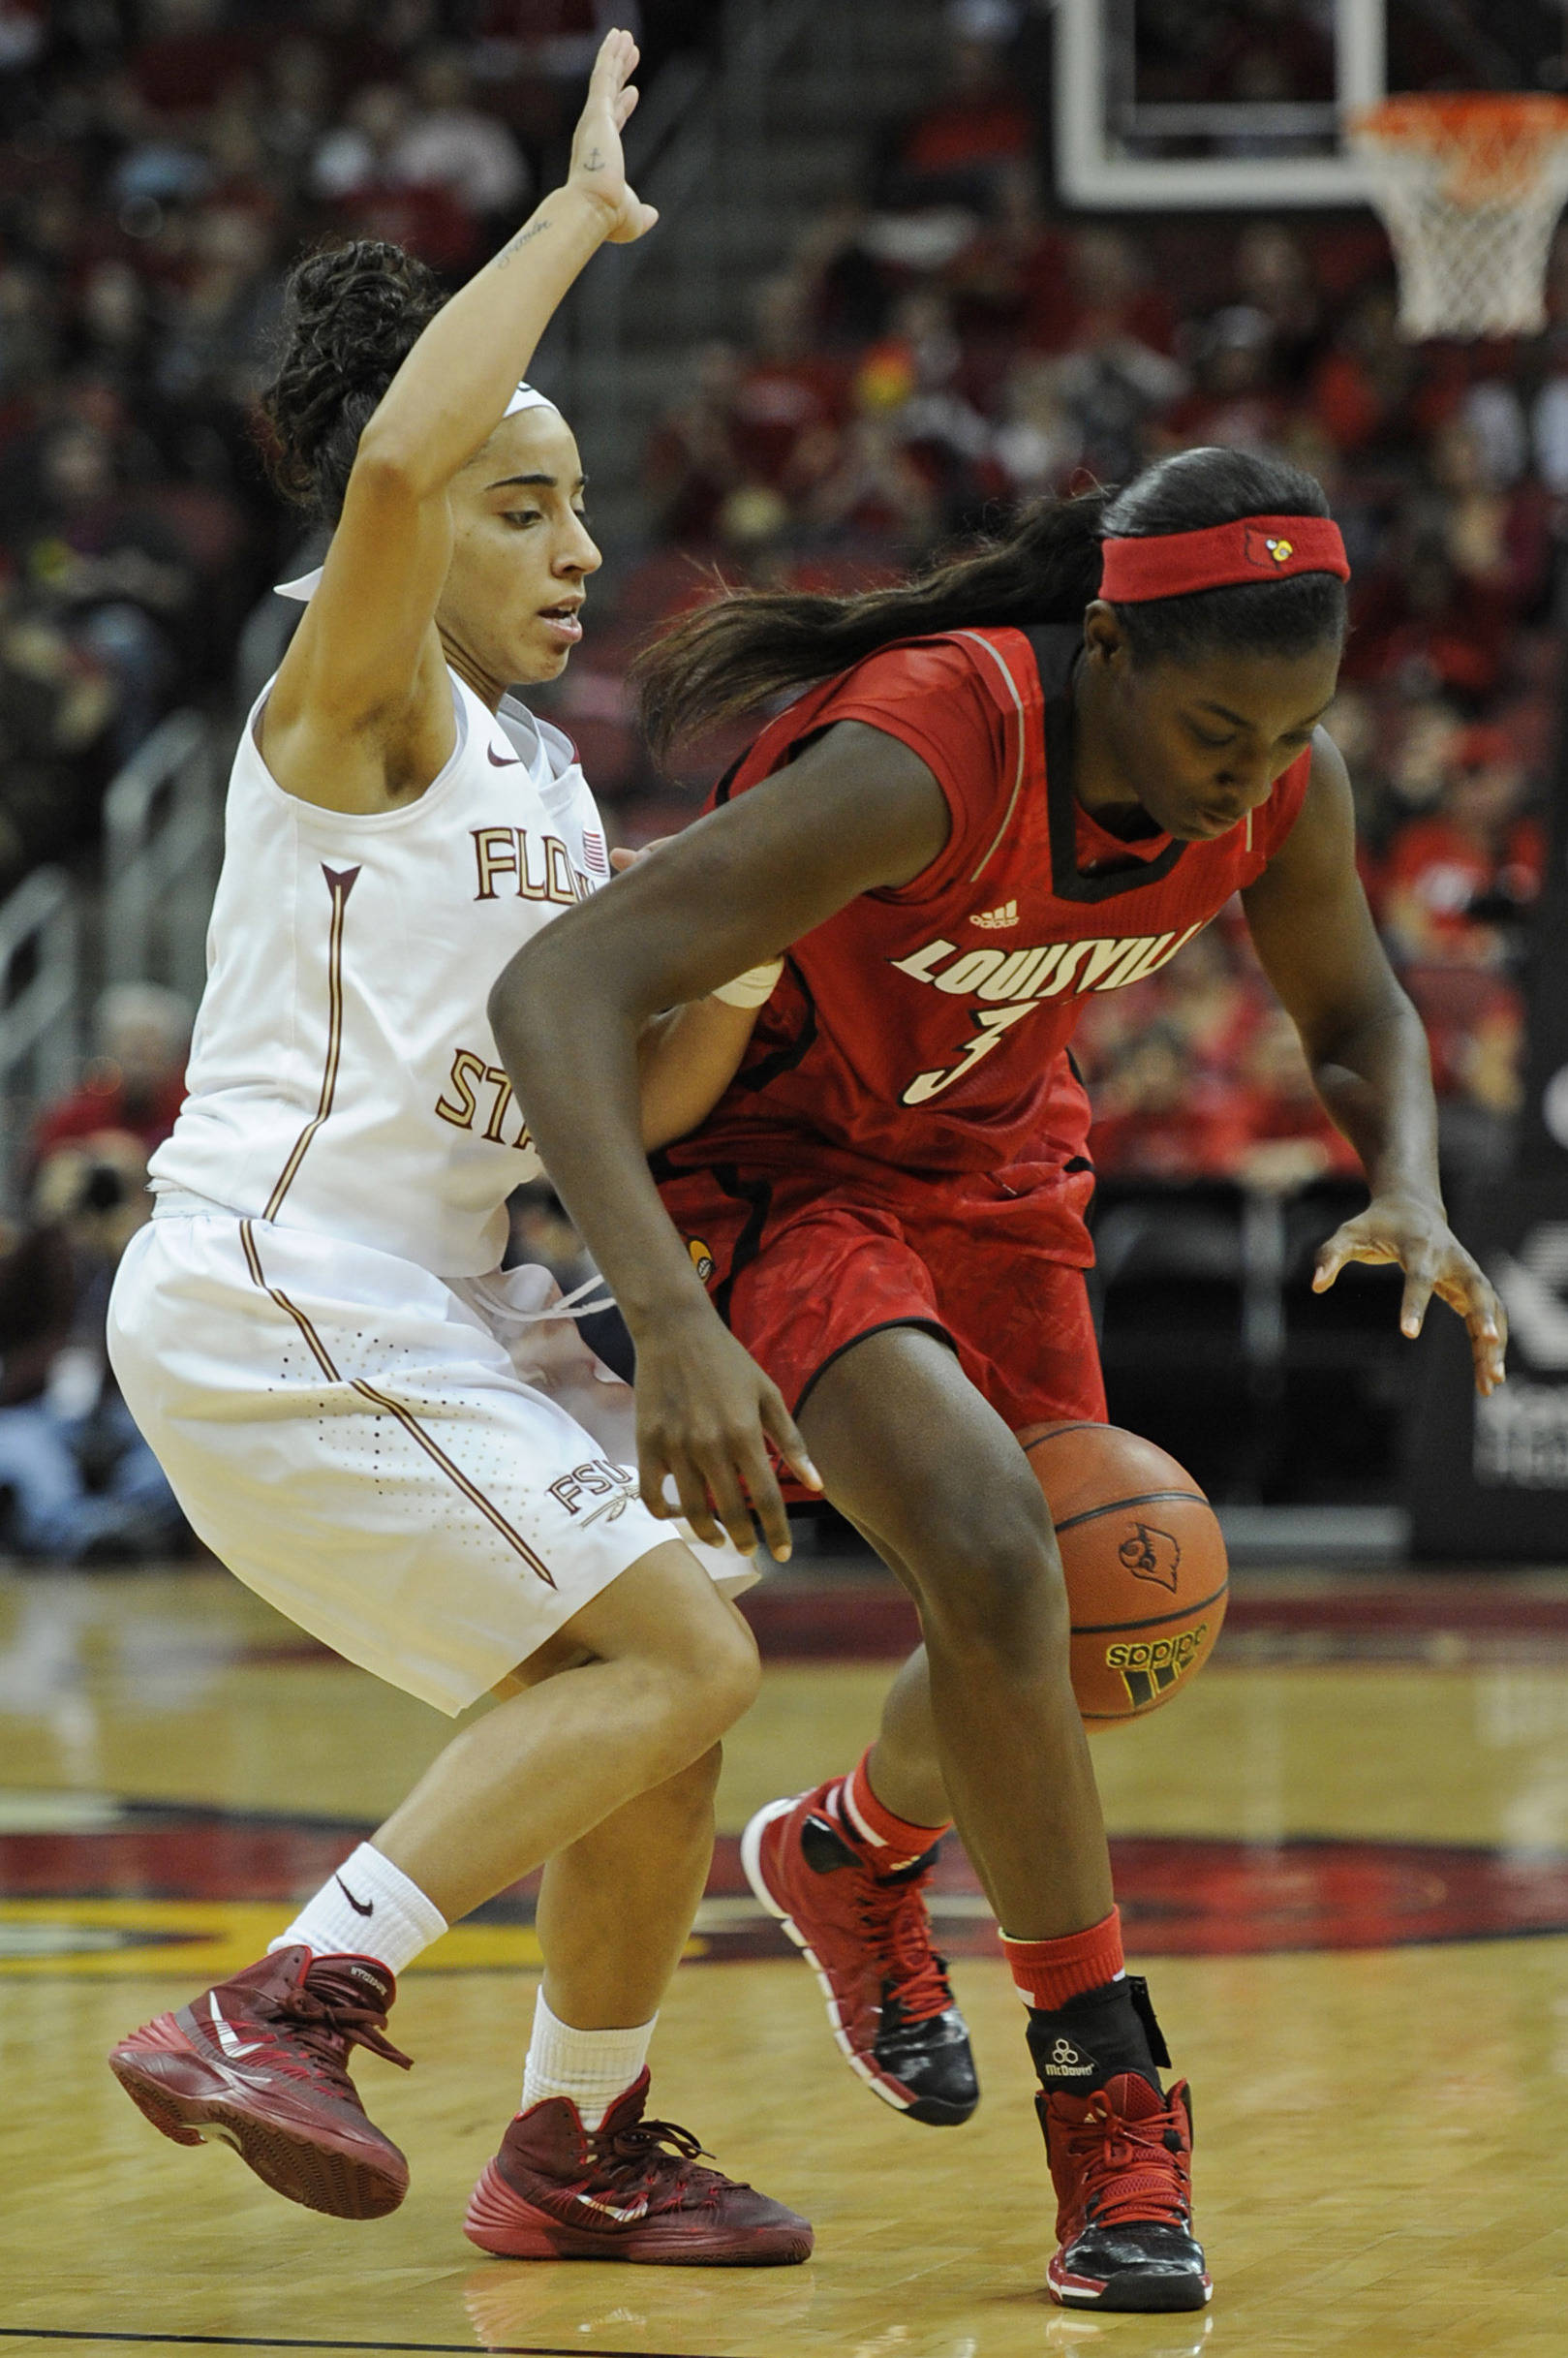 Nov 24, 2013; Louisville, KY, USA; Louisville Cardinals forward Asia Taylor (31) dribbles the ball around Florida State Seminoles guard Cheetah Delgado (5) during the first half at KFC YUM! Center. Mandatory Credit: Jamie Rhodes-USA TODAY Sports